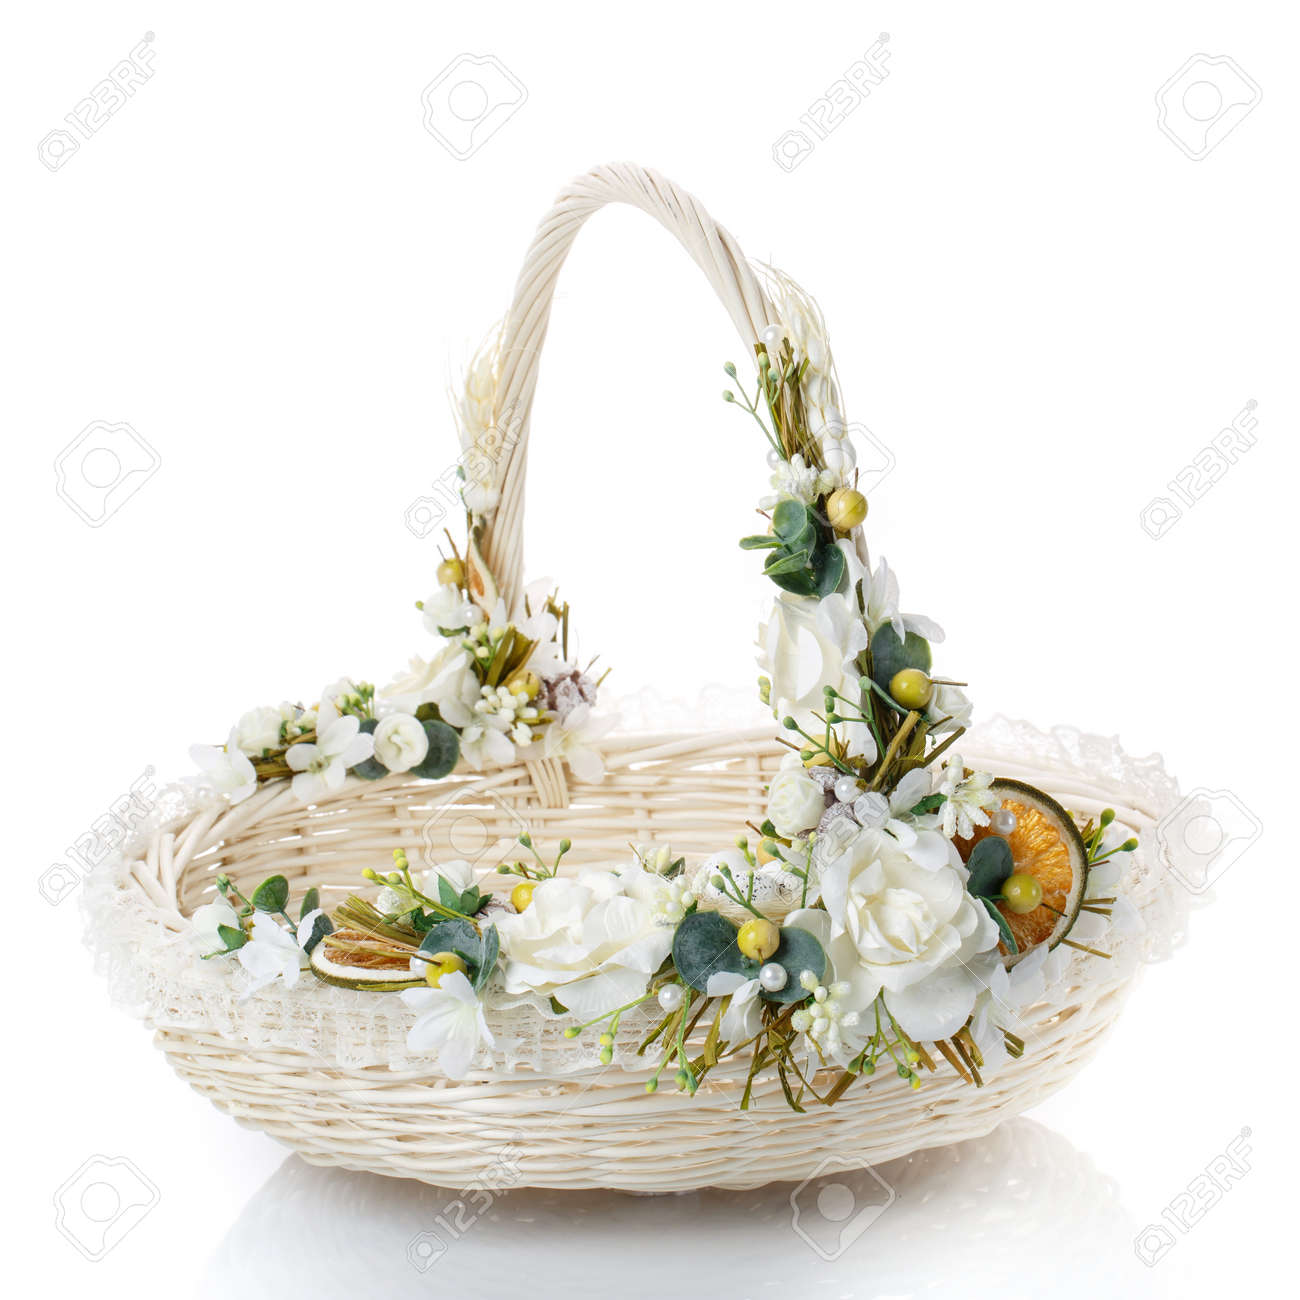 Beautifully decorated empty wicker basket on a white background beautifully decorated empty wicker basket on a white background stock photo 73137969 mightylinksfo